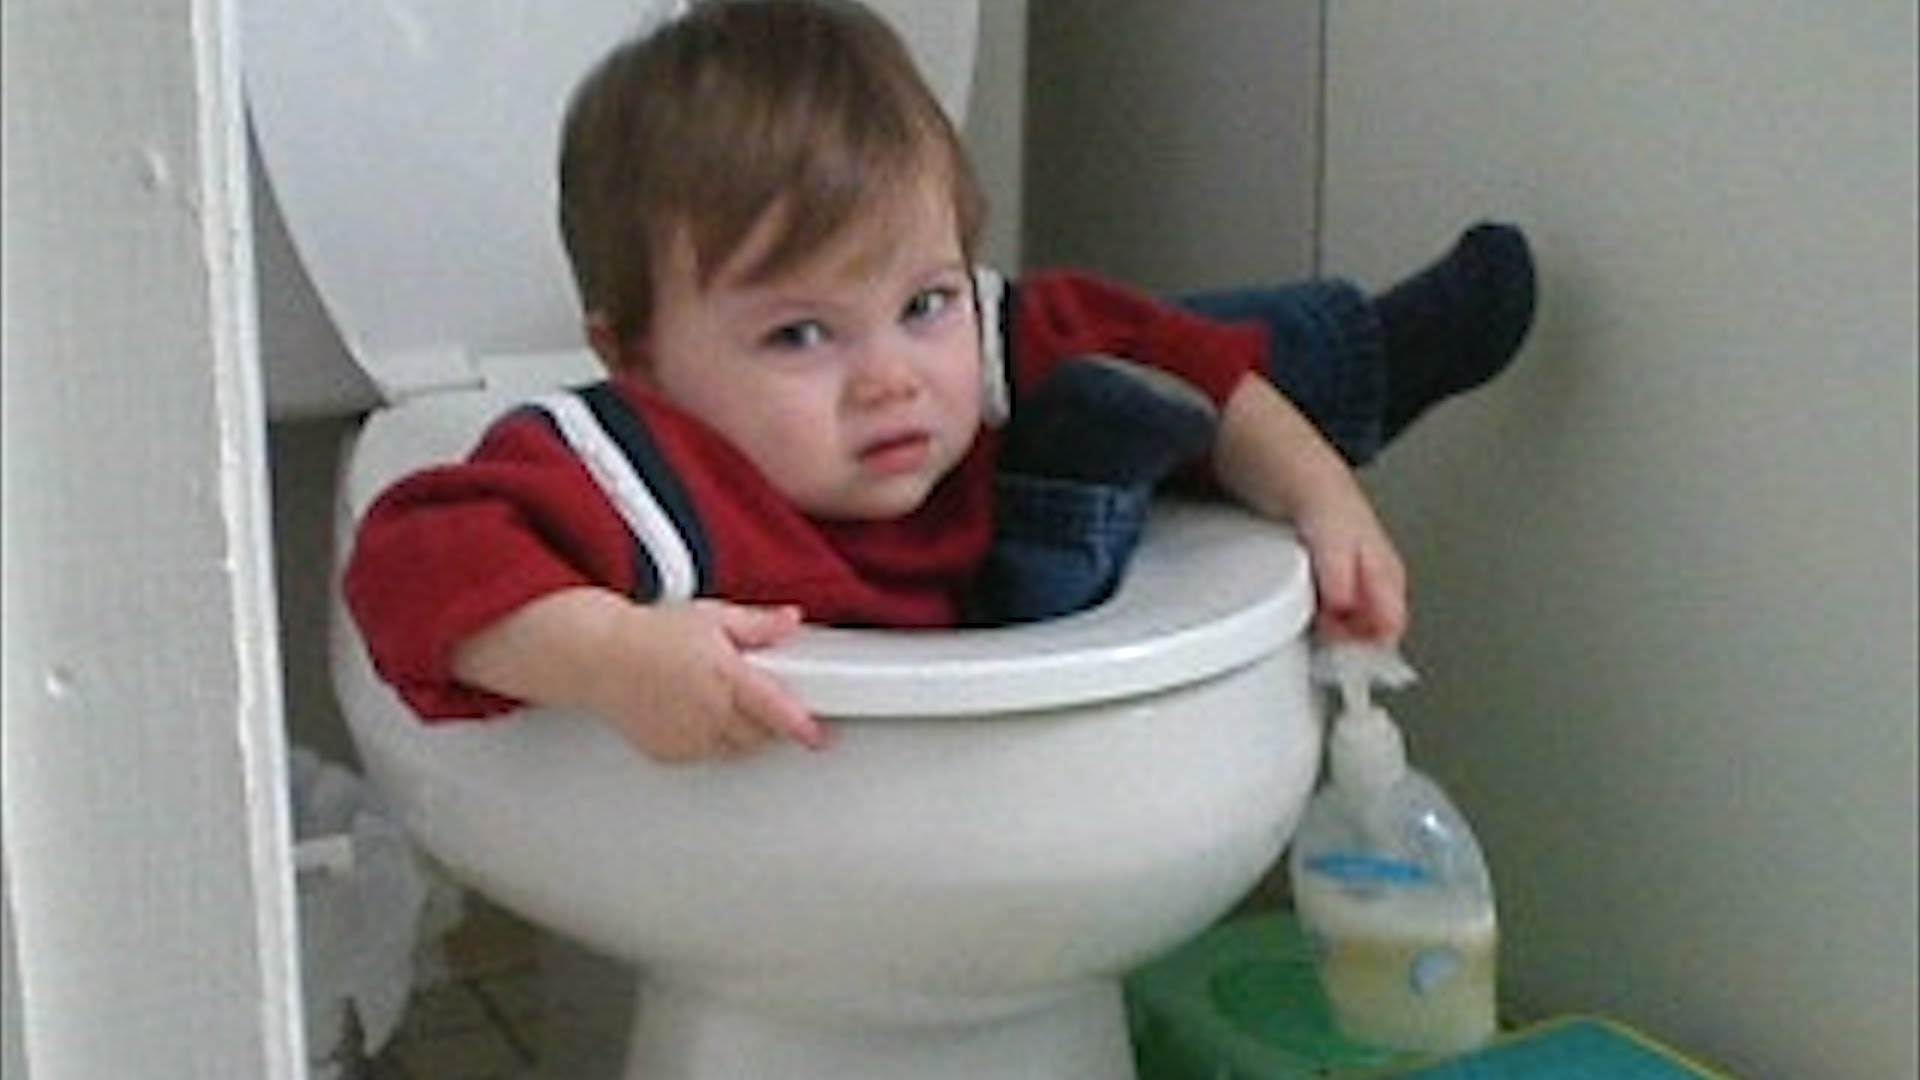 21 Reasons Why Kids Are Just Tiny Drunk Adults